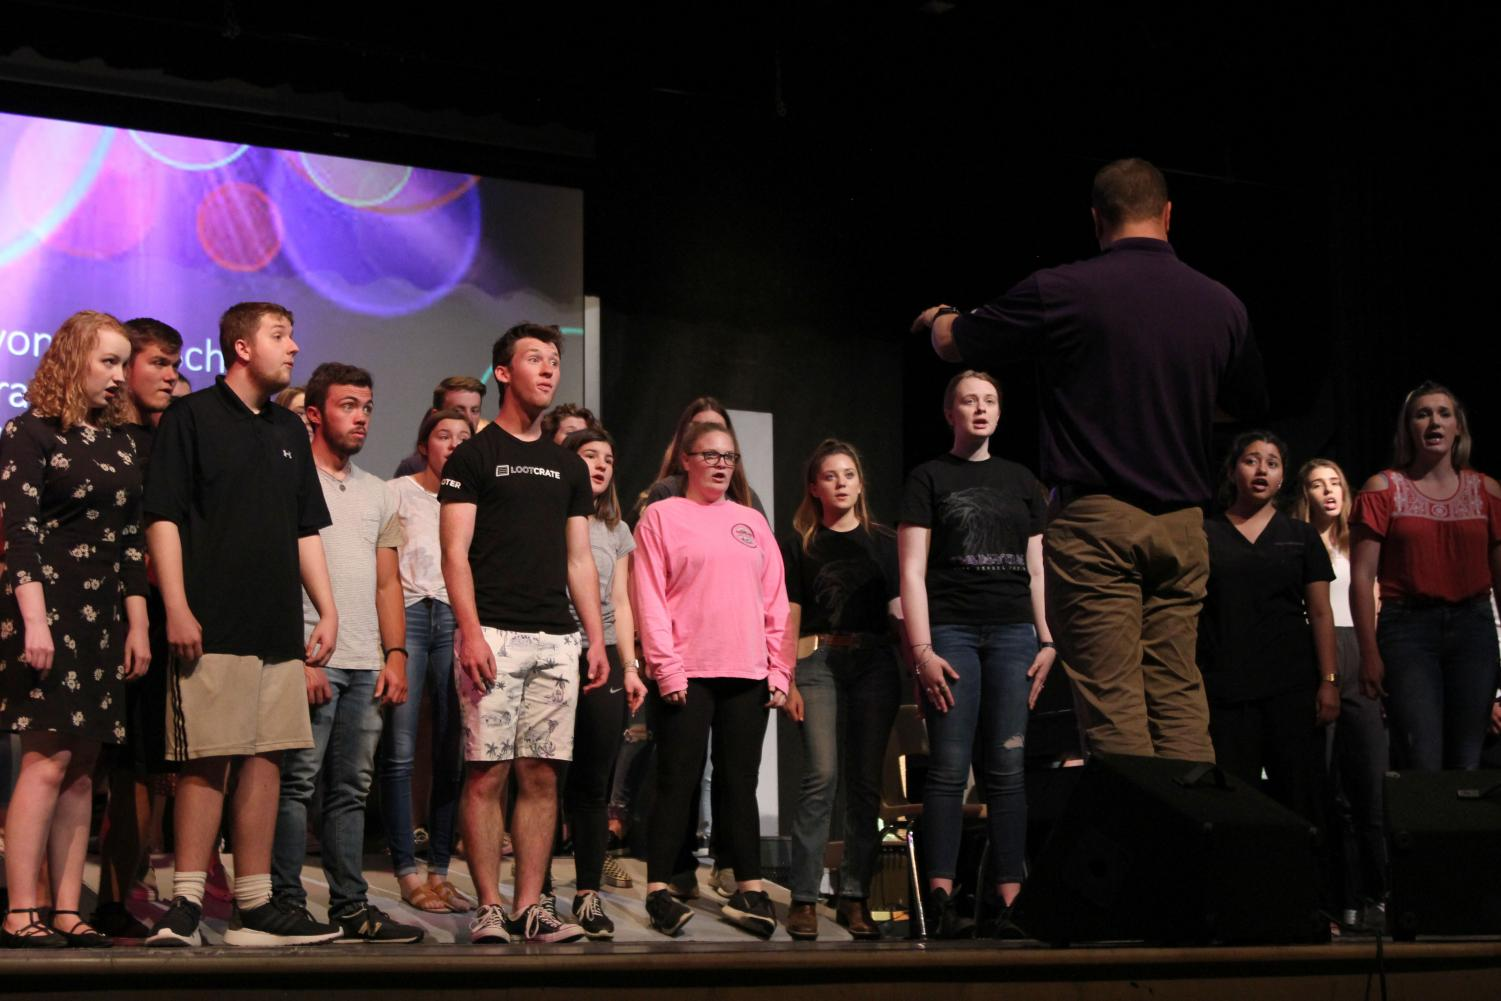 The varsity choir rehearses Monday afternoon for their annual variety show concert.